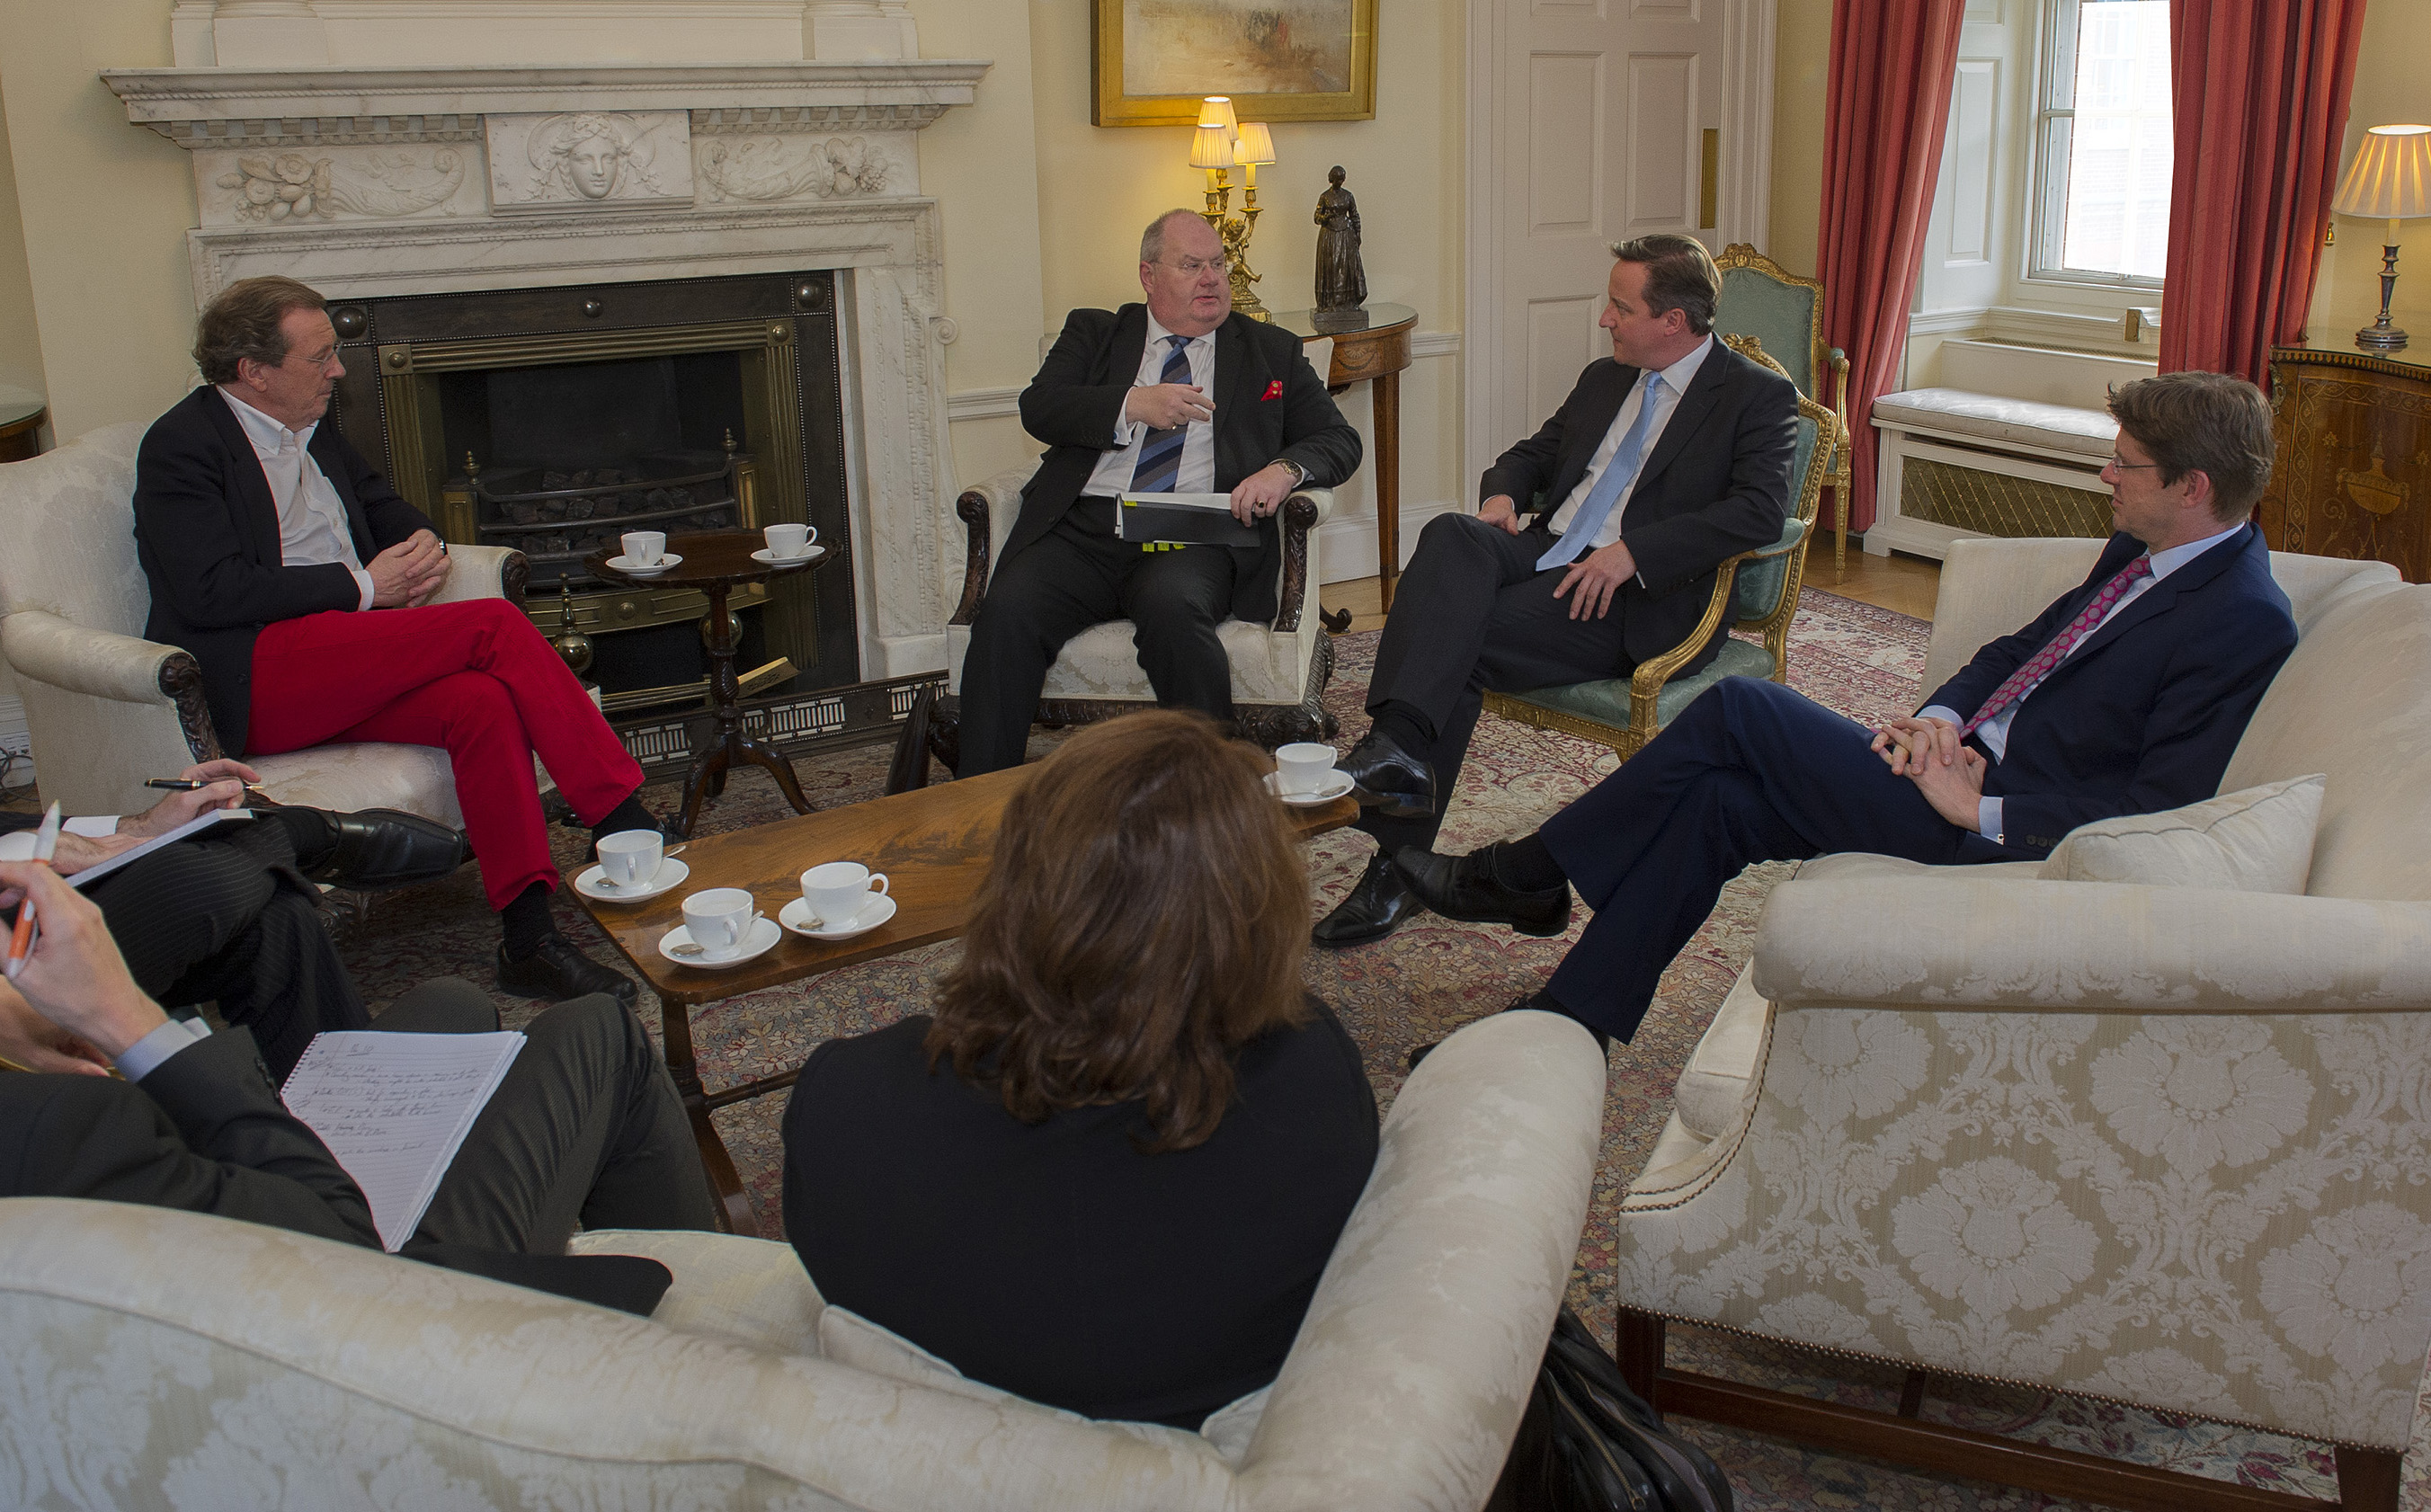 l-r: George Ferguson, Eric Pickles, David Cameron, Greg Clark and 'Lady Gaga' Yates (back to the picture)